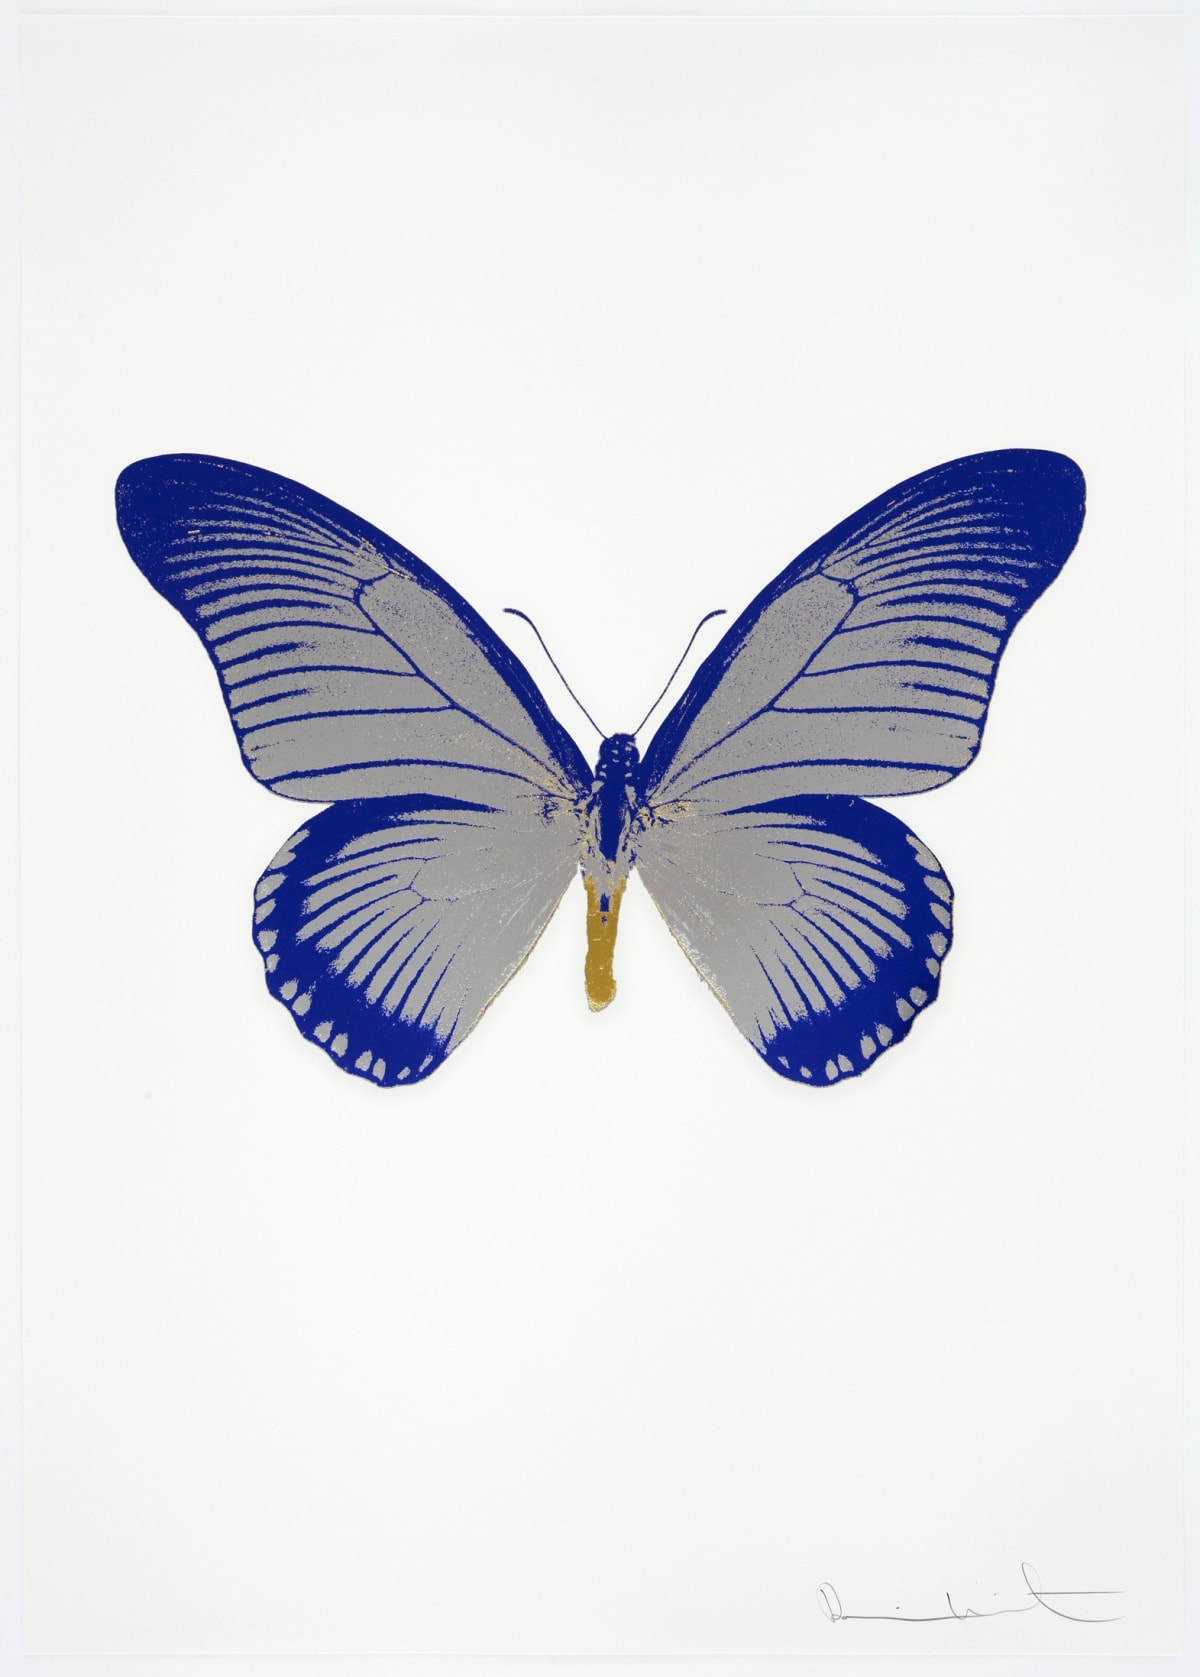 Damien Hirst The Souls IV - Silver Gloss/Westminster Blue/Oriental Gold Damien Hirst butterfly foil print for sale Damien Hirst print for sale , 2010 3 colour foil block on 300gsm Arches 88 archival paper. Signed and numbered. Published by Paul Stolper and Other Criteria 72 x 51cm OC8028 / 1418-51 Edition of 15